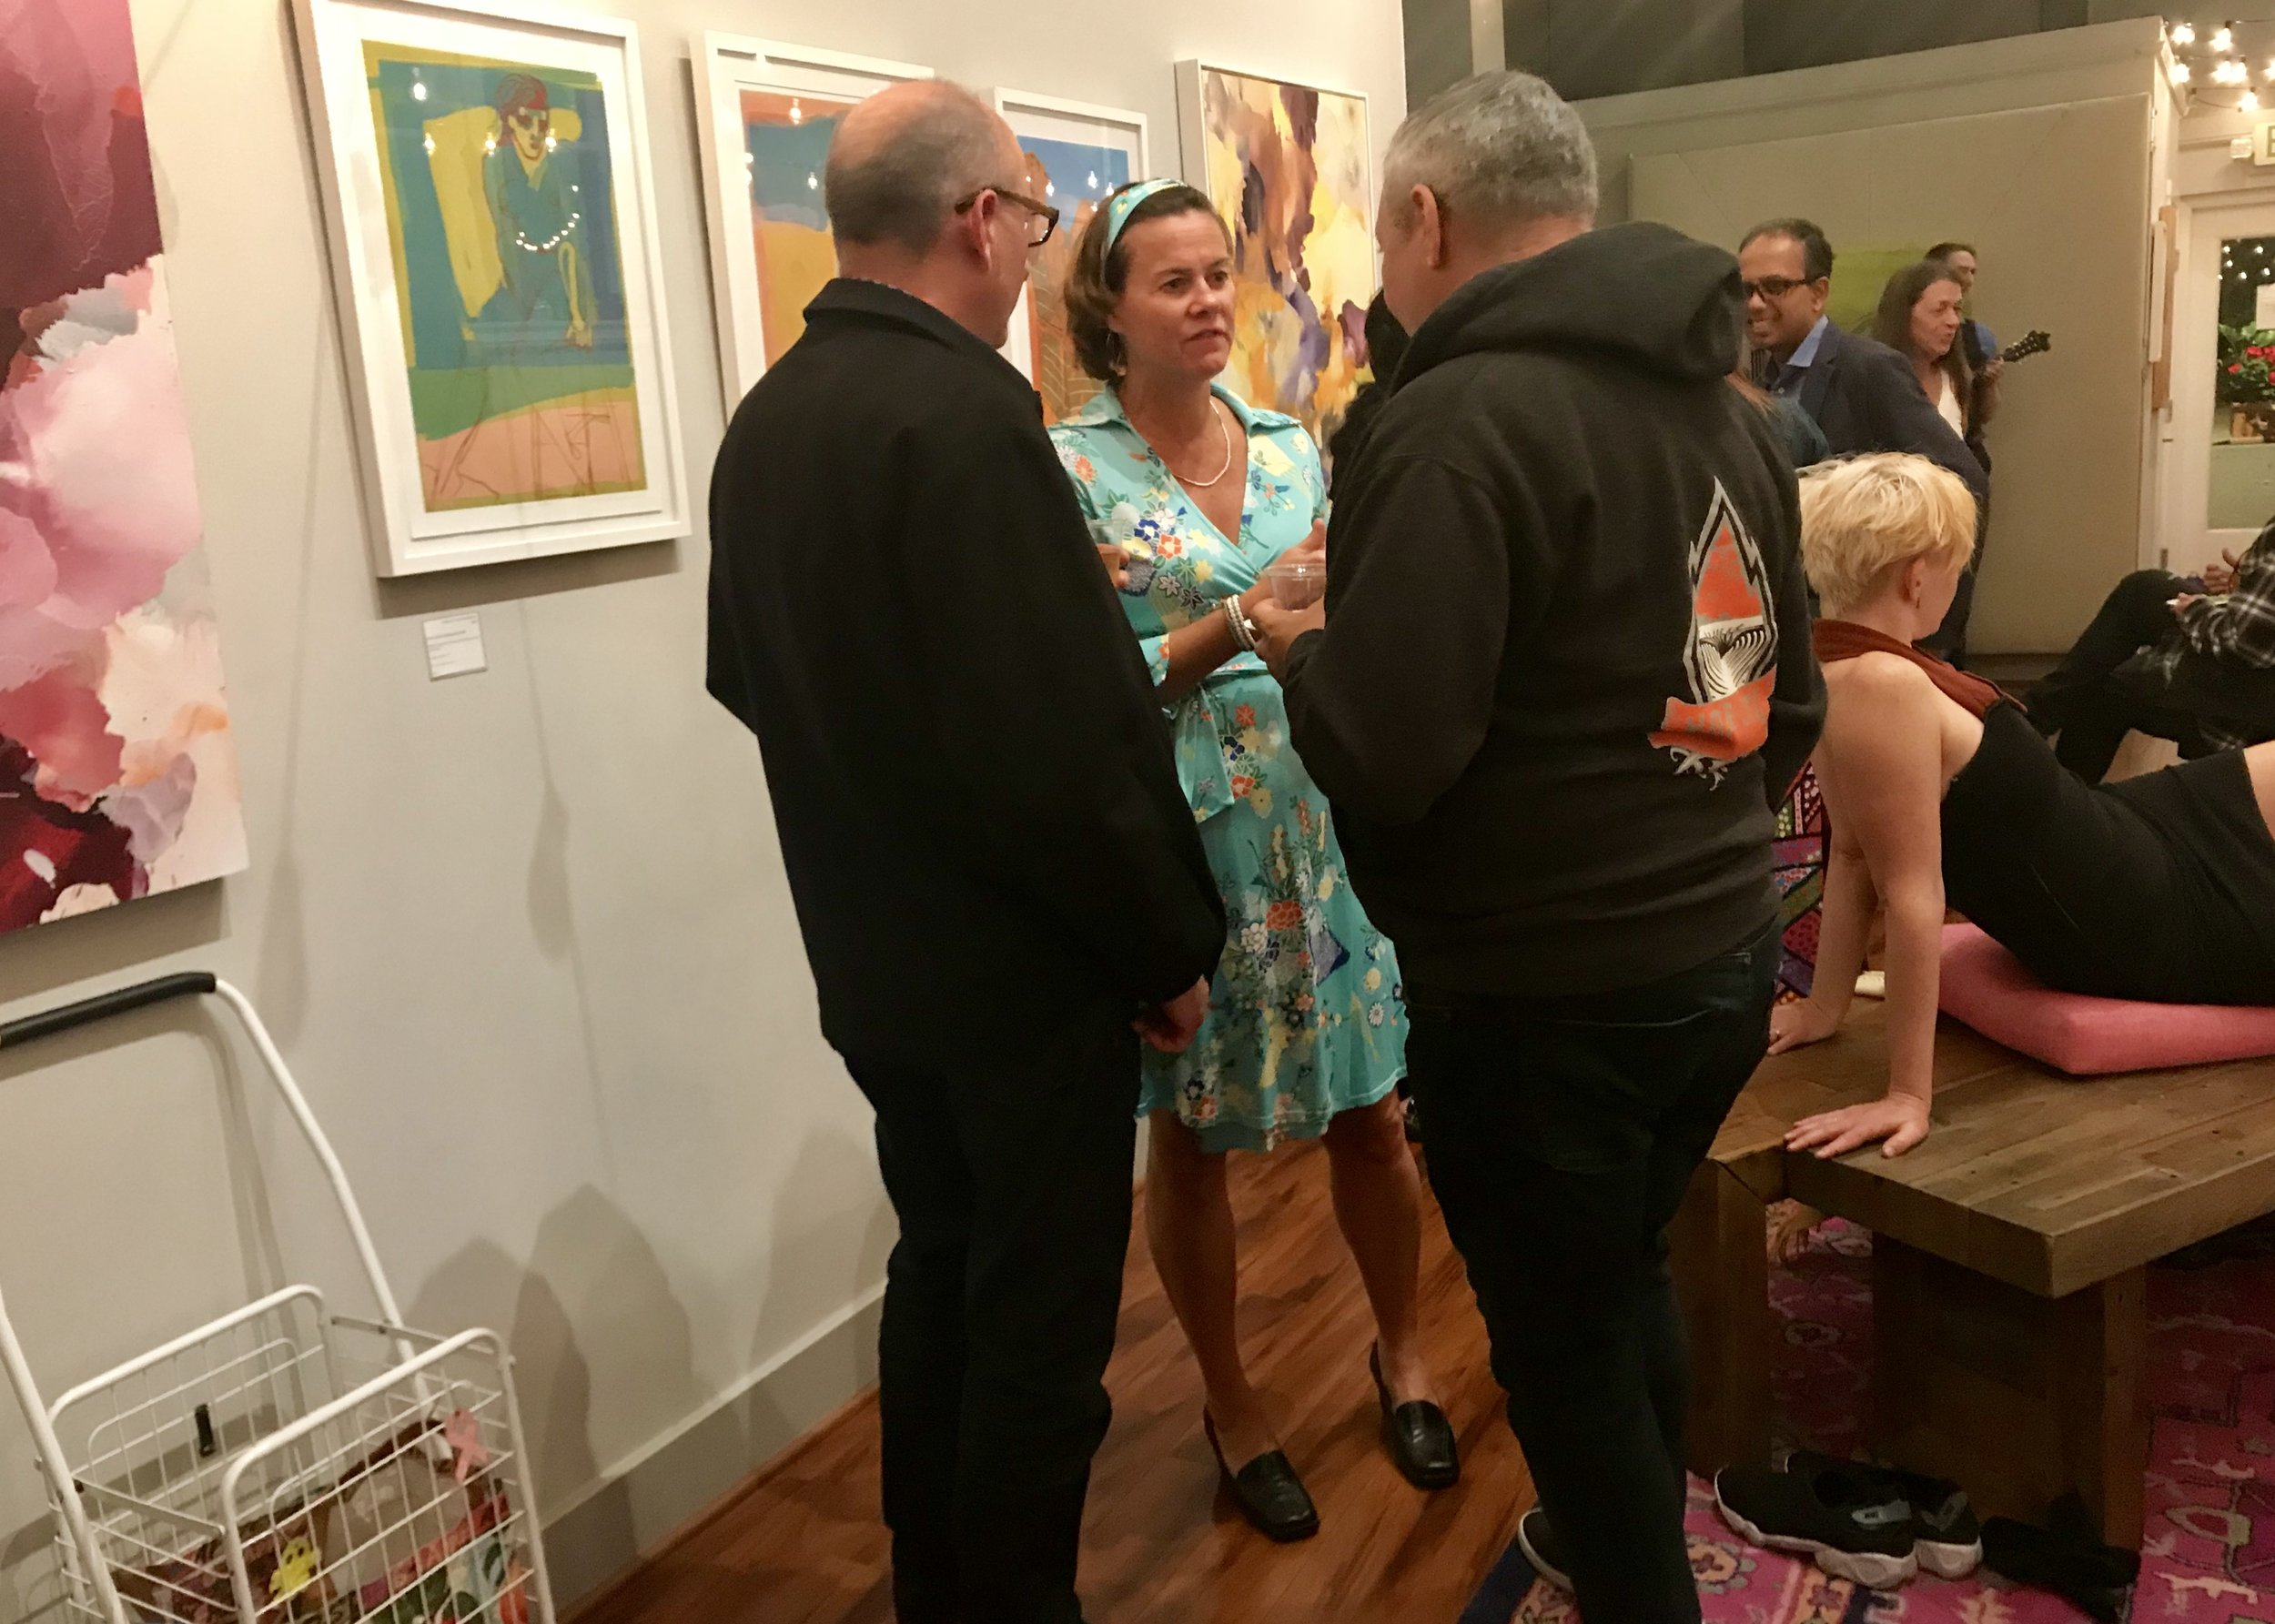 October 2018 reception at Spark Arts Gallery (with model posing on right).